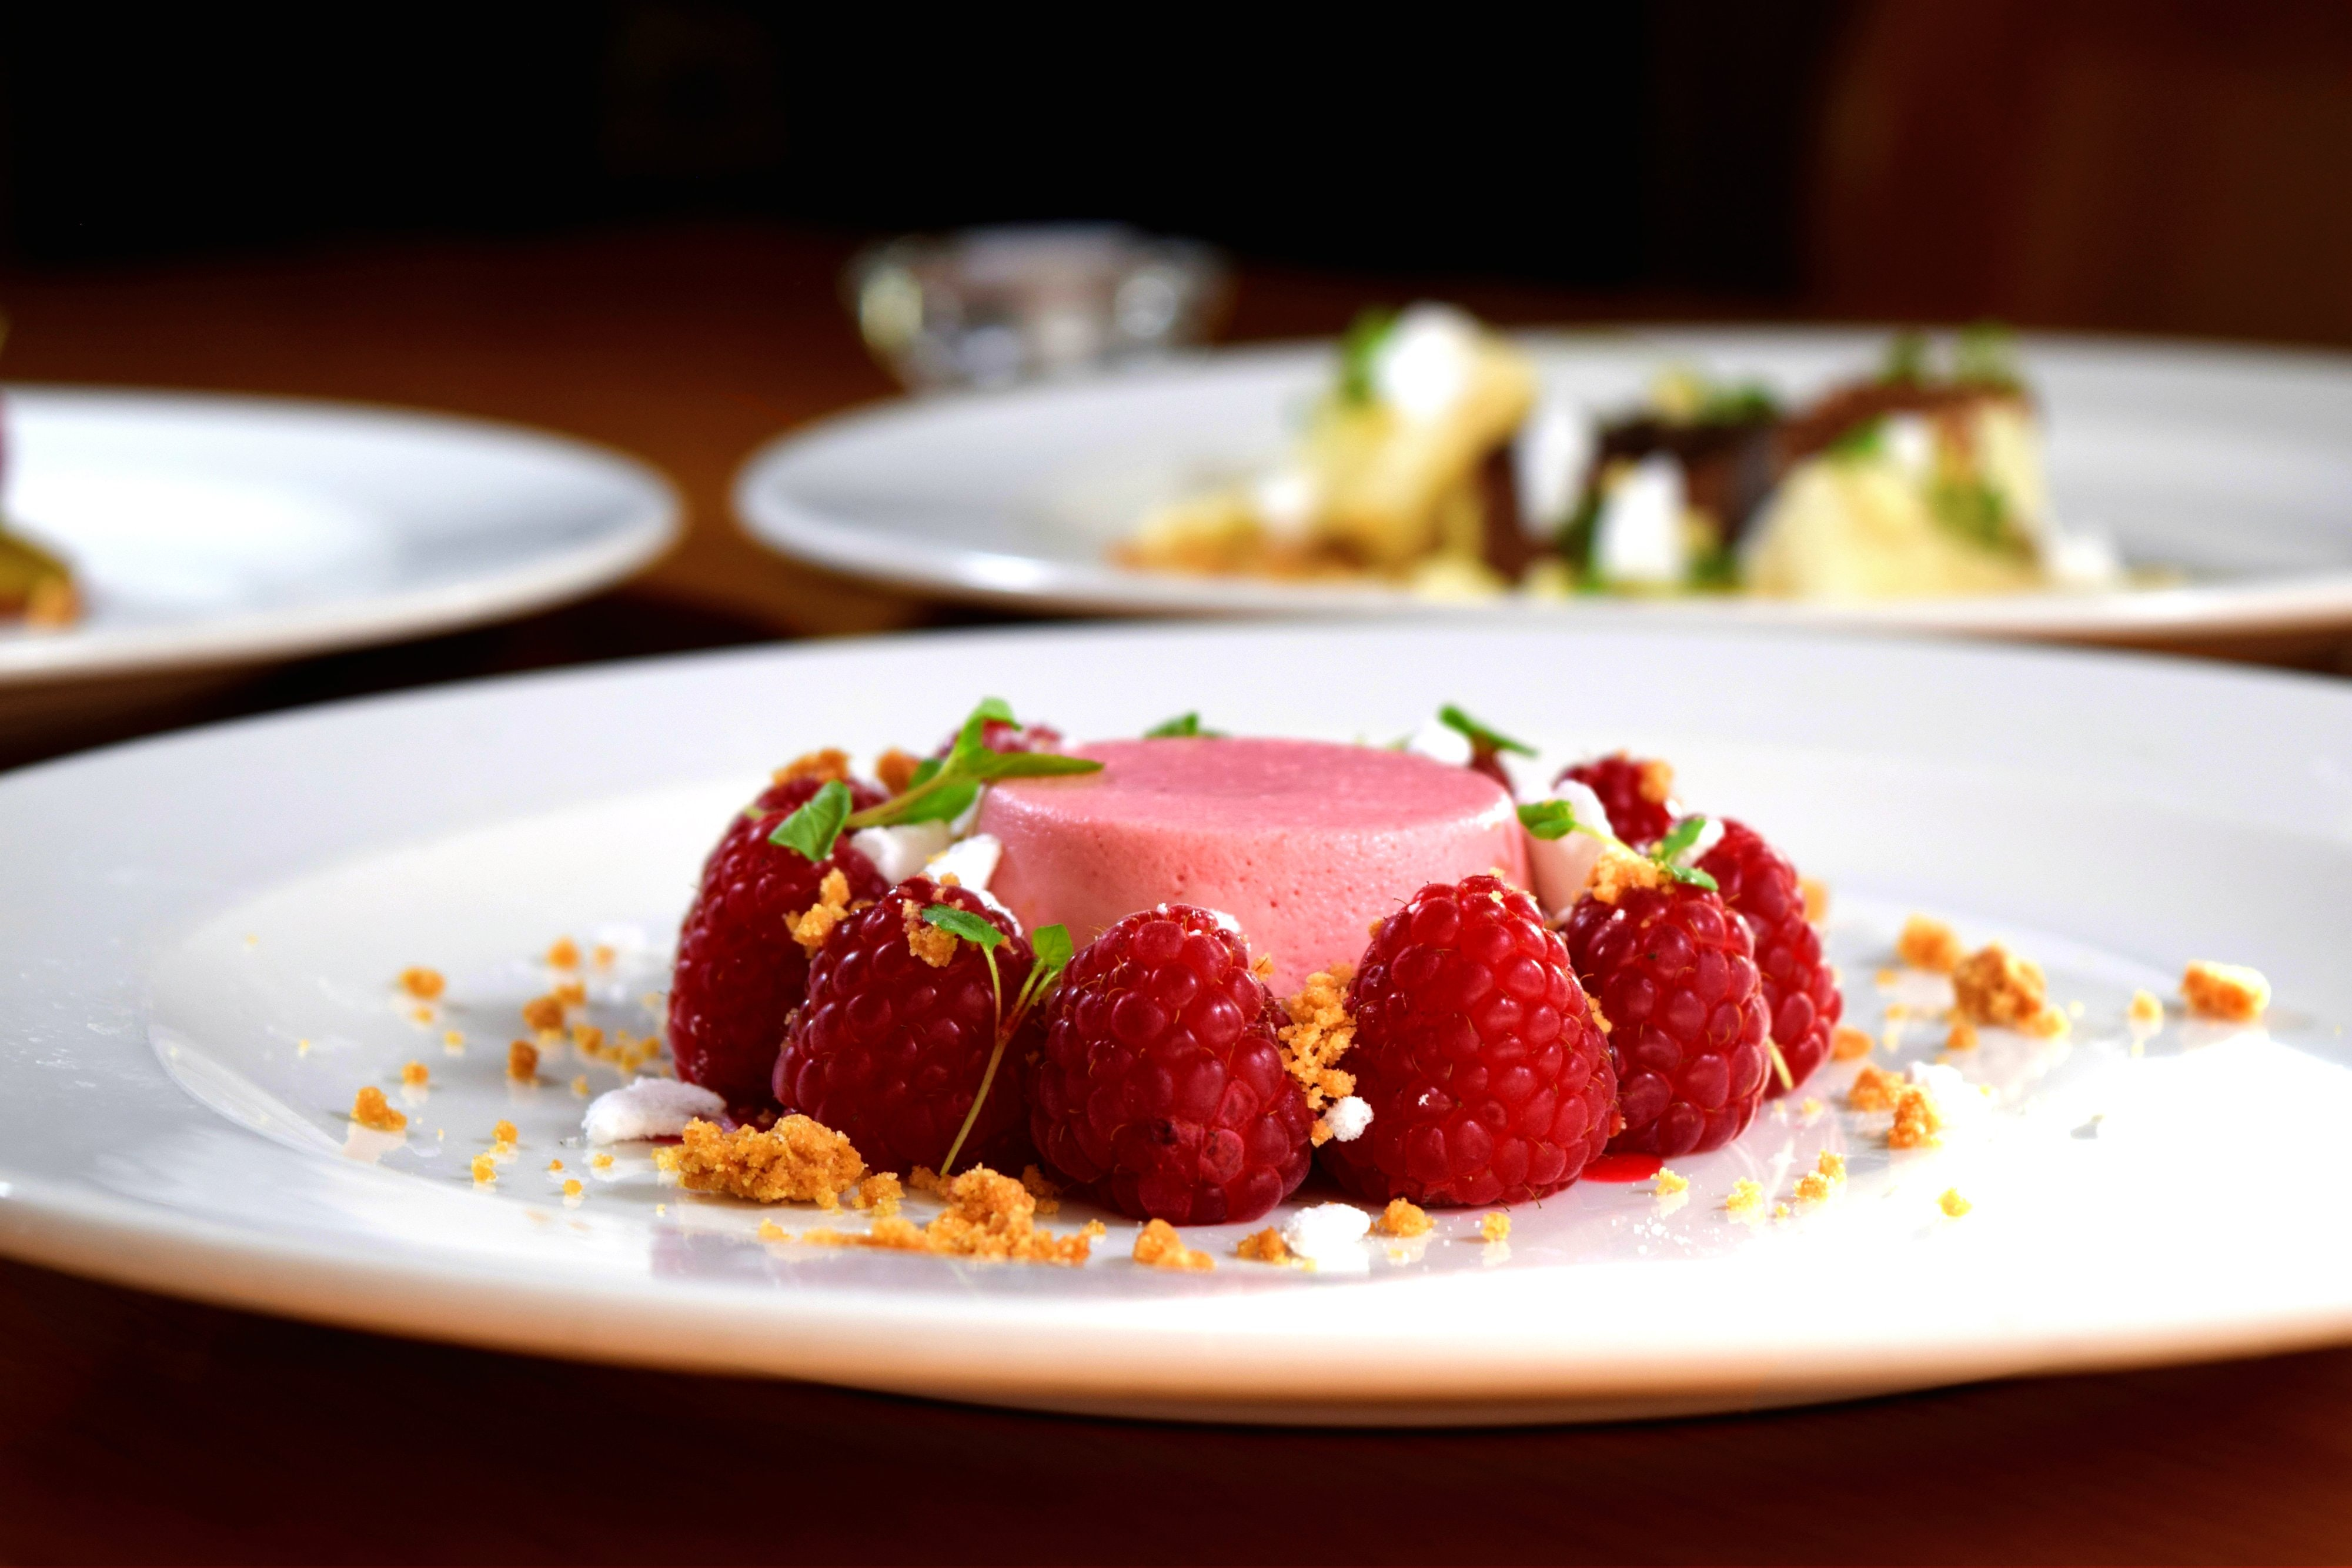 Small red desert surrounded by raspberries on a white plate with other desserts in the background